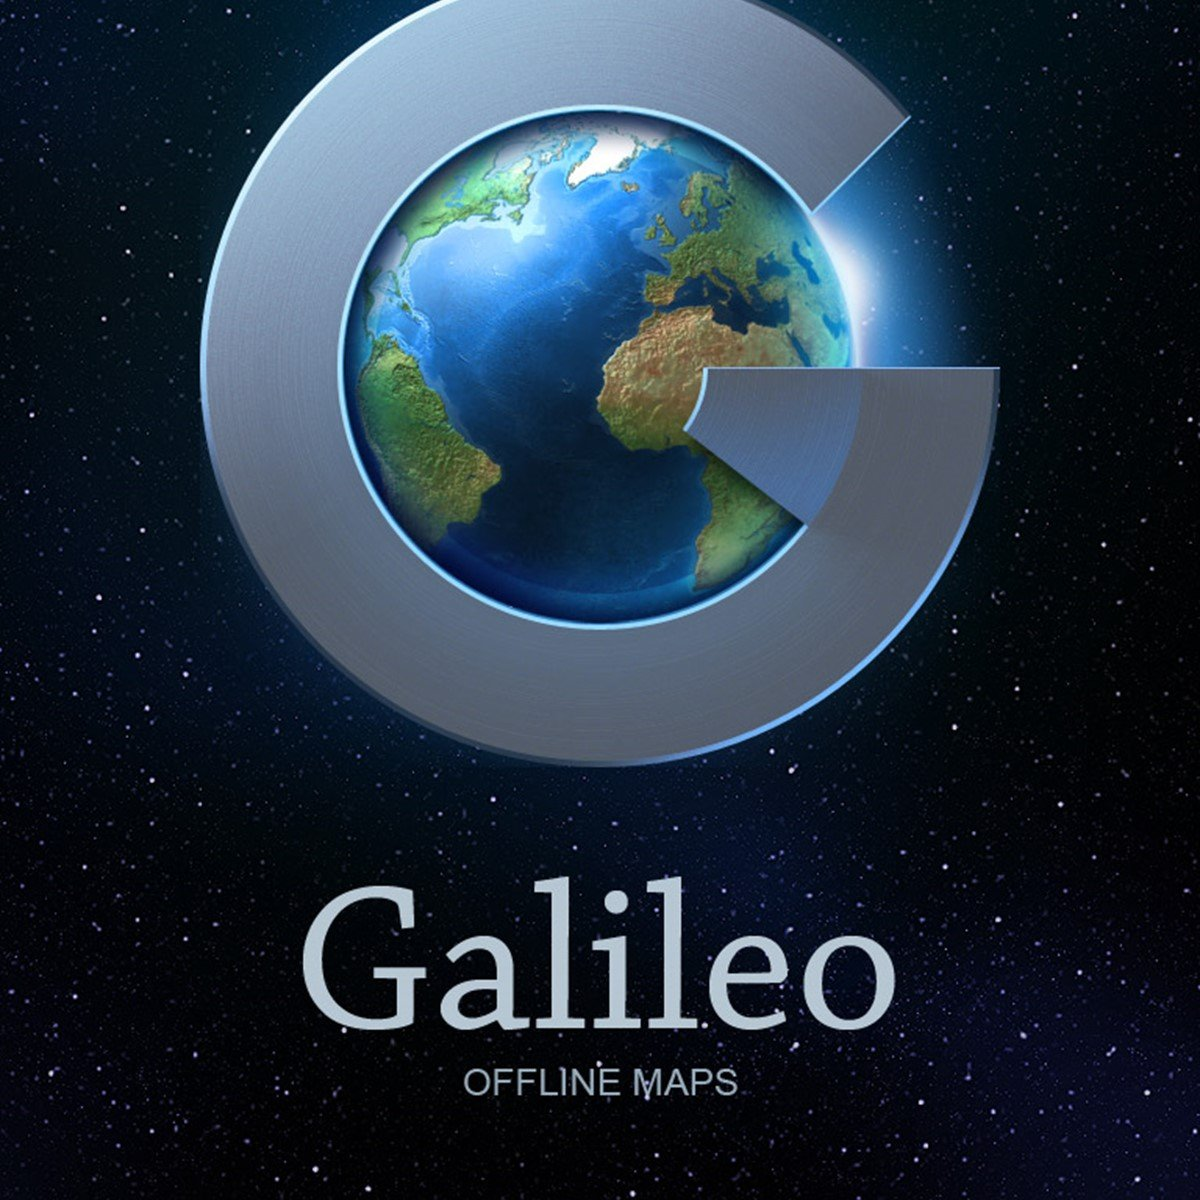 Galileo Offline Maps Alternatives and Similar Apps ... on confucius map, gps map, ortelius map, science map, golan map, bacon map, kingman map, scientific revolution map, mantua italy map, anaximander map, ptolemy map, balboa map, gravity map, nicolaus copernicus map, bering map, eclipse map, orion map, jane goodall map, sir francis drake map, napoleon map,